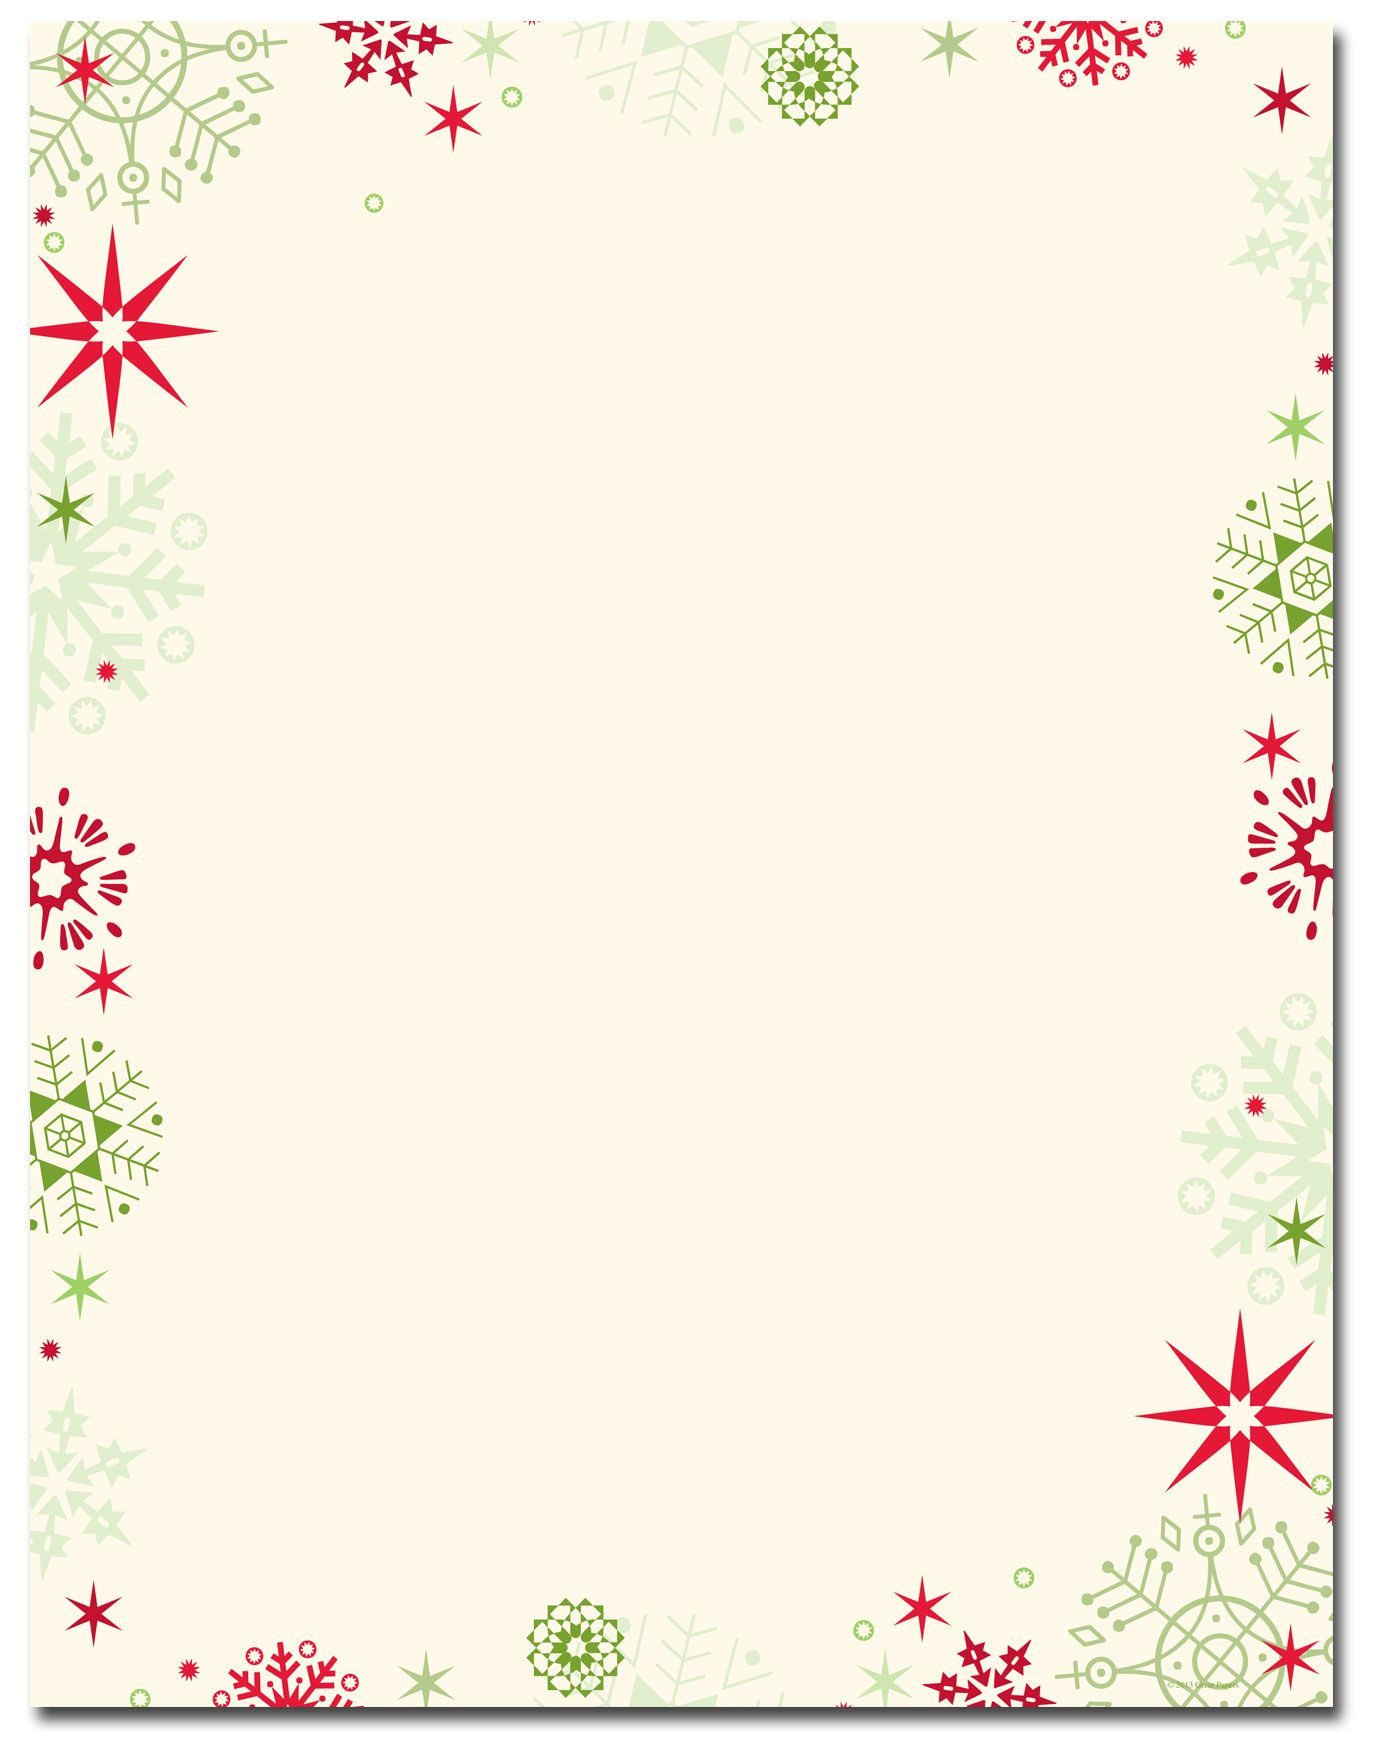 photograph about Free Christmas Stationary Printable called Absolutely free Printable A4 Xmas Letterheads